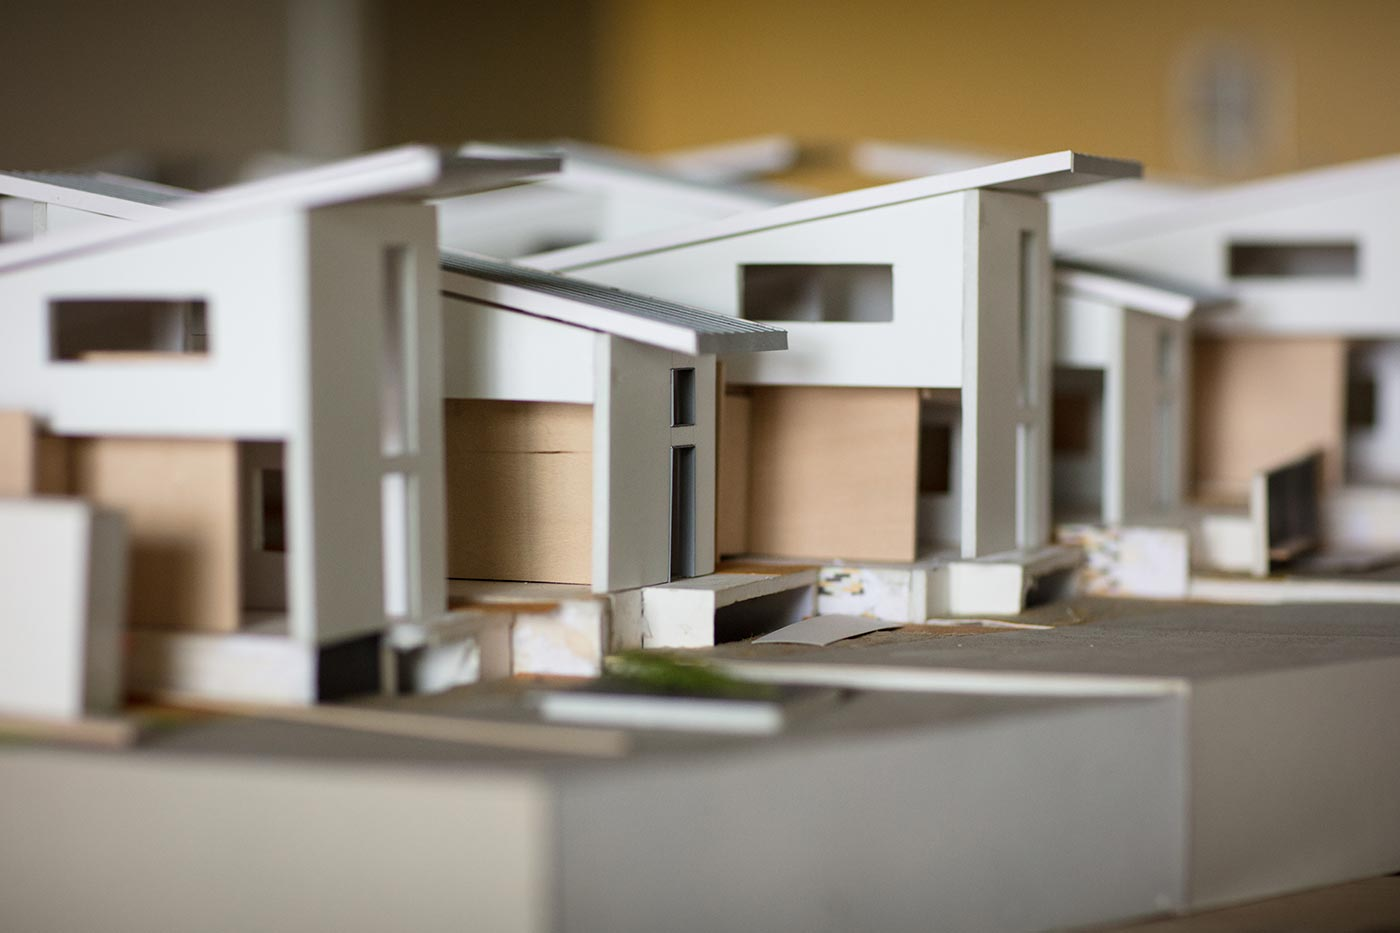 Architectural models of cross-border community stations, education-based public spaces, by Teddy Cruz.